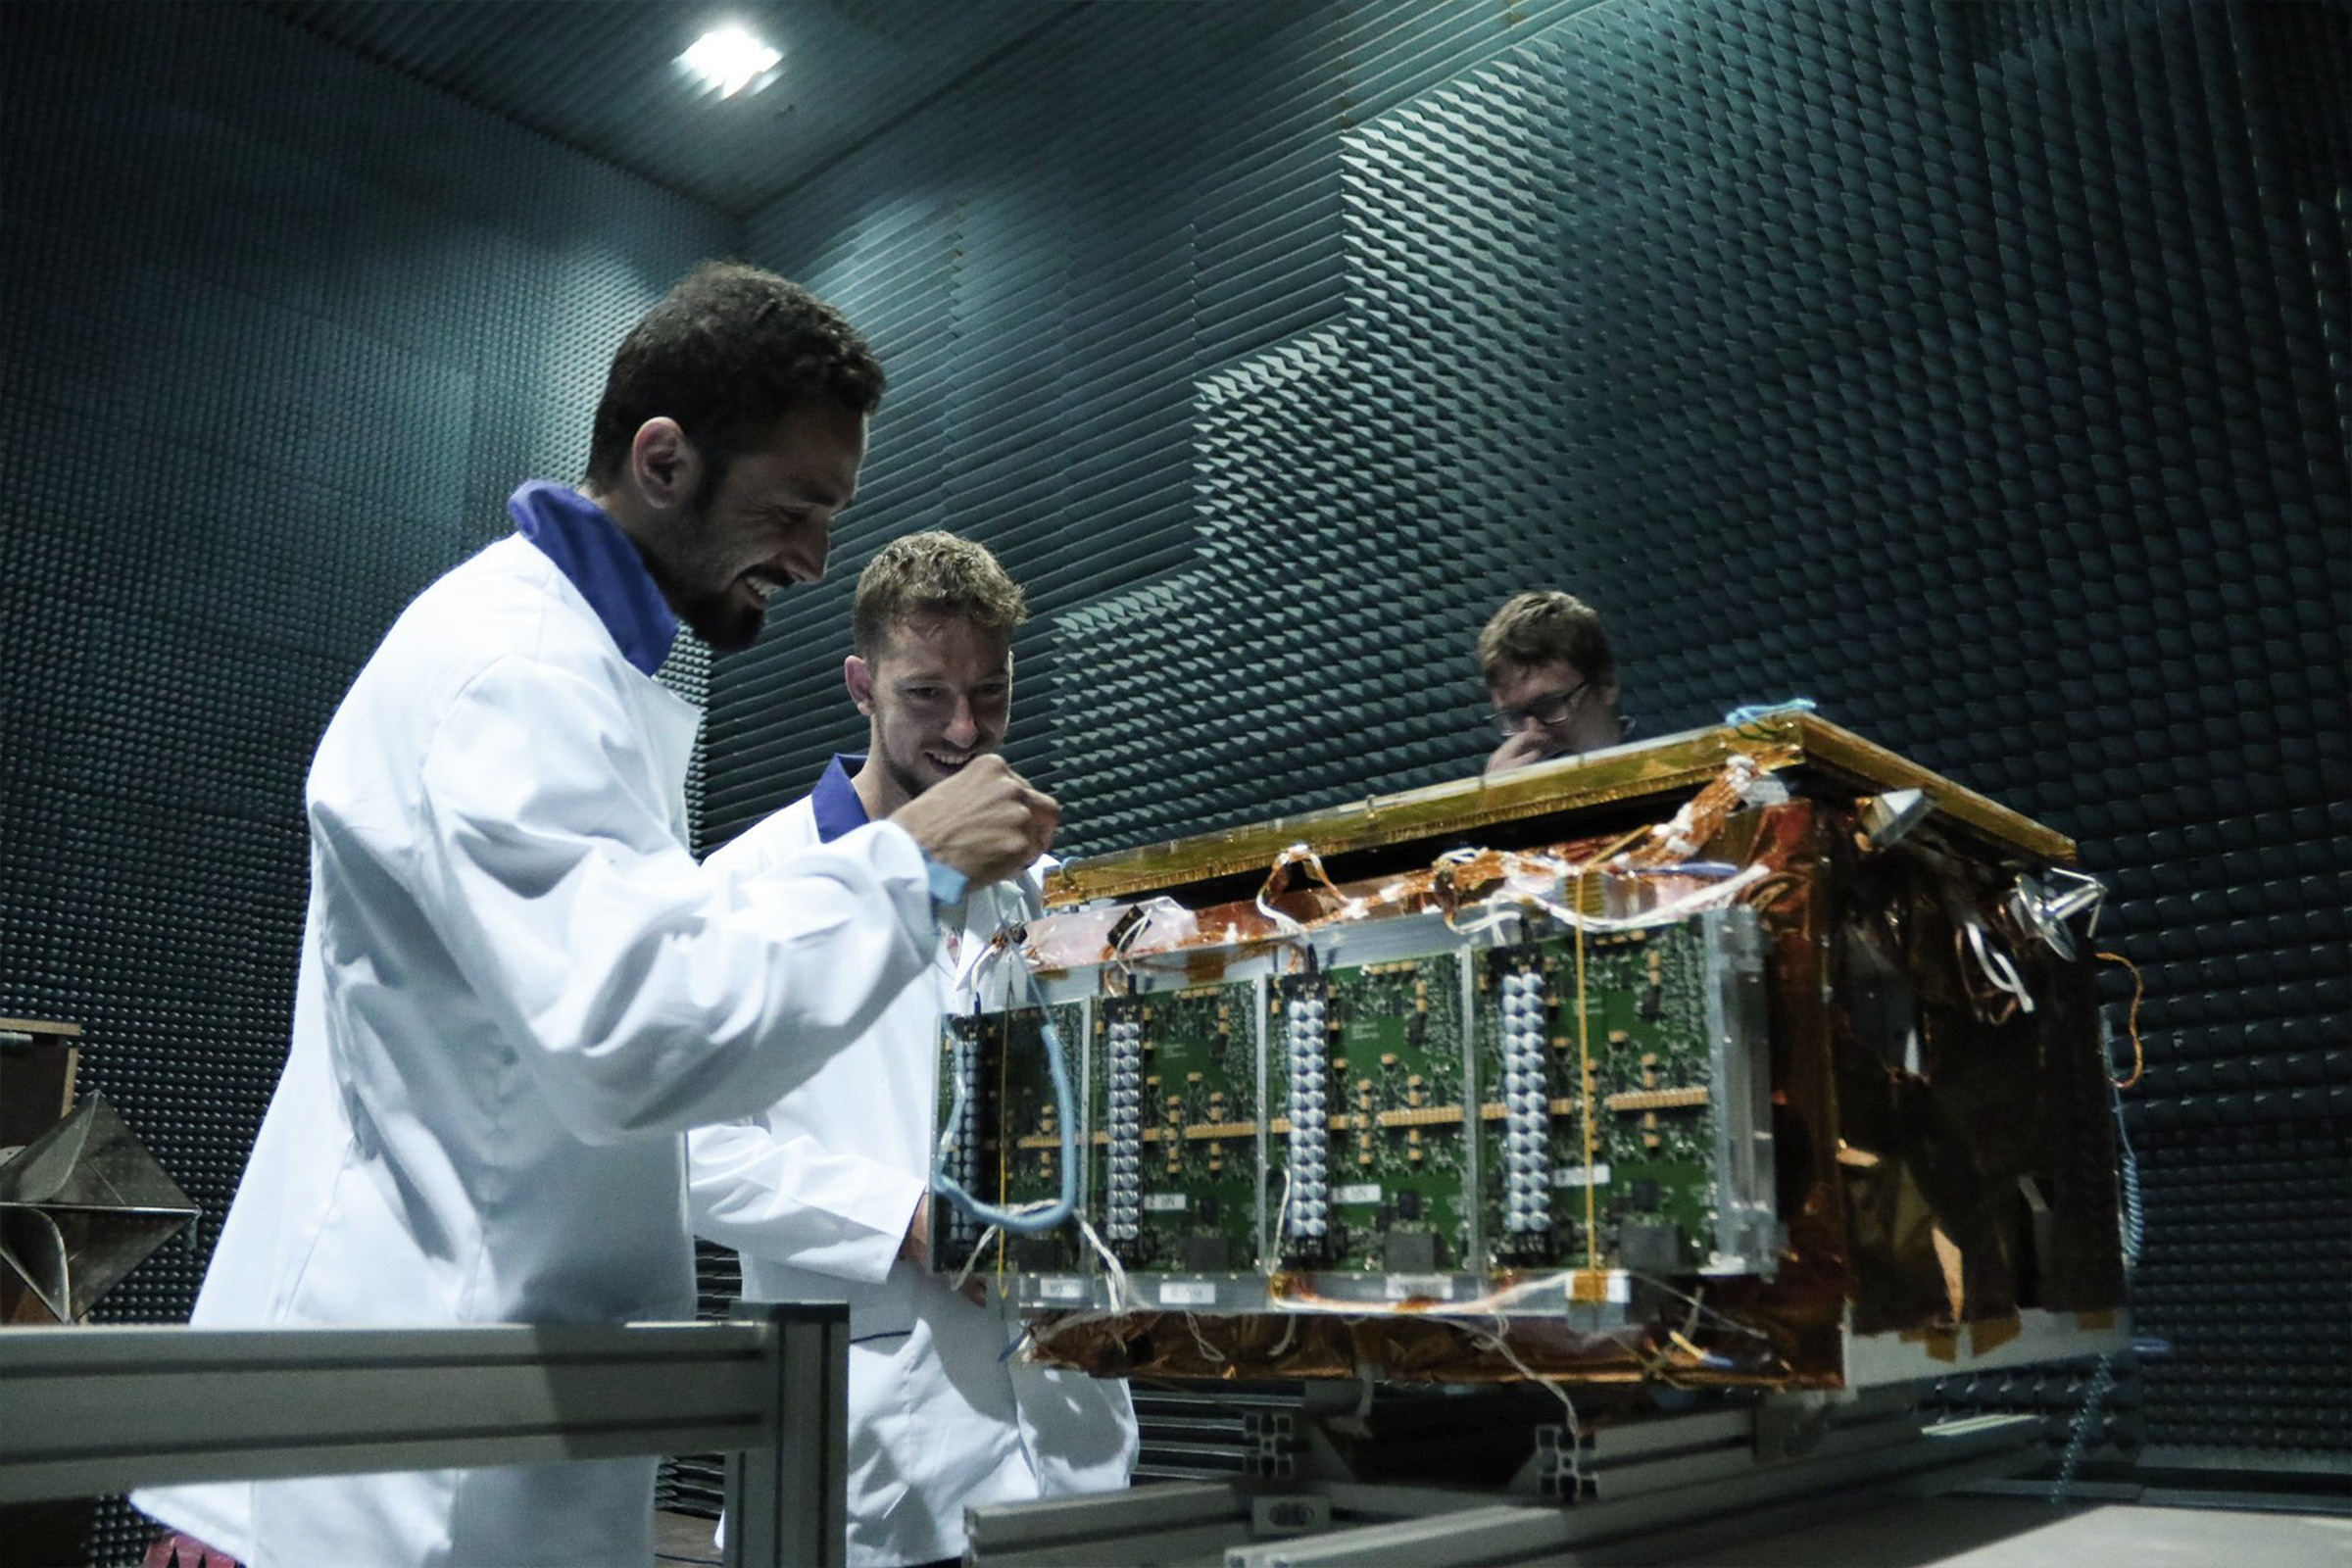 ICEYE engineers in an anechoic chamber with ICEYE hardware